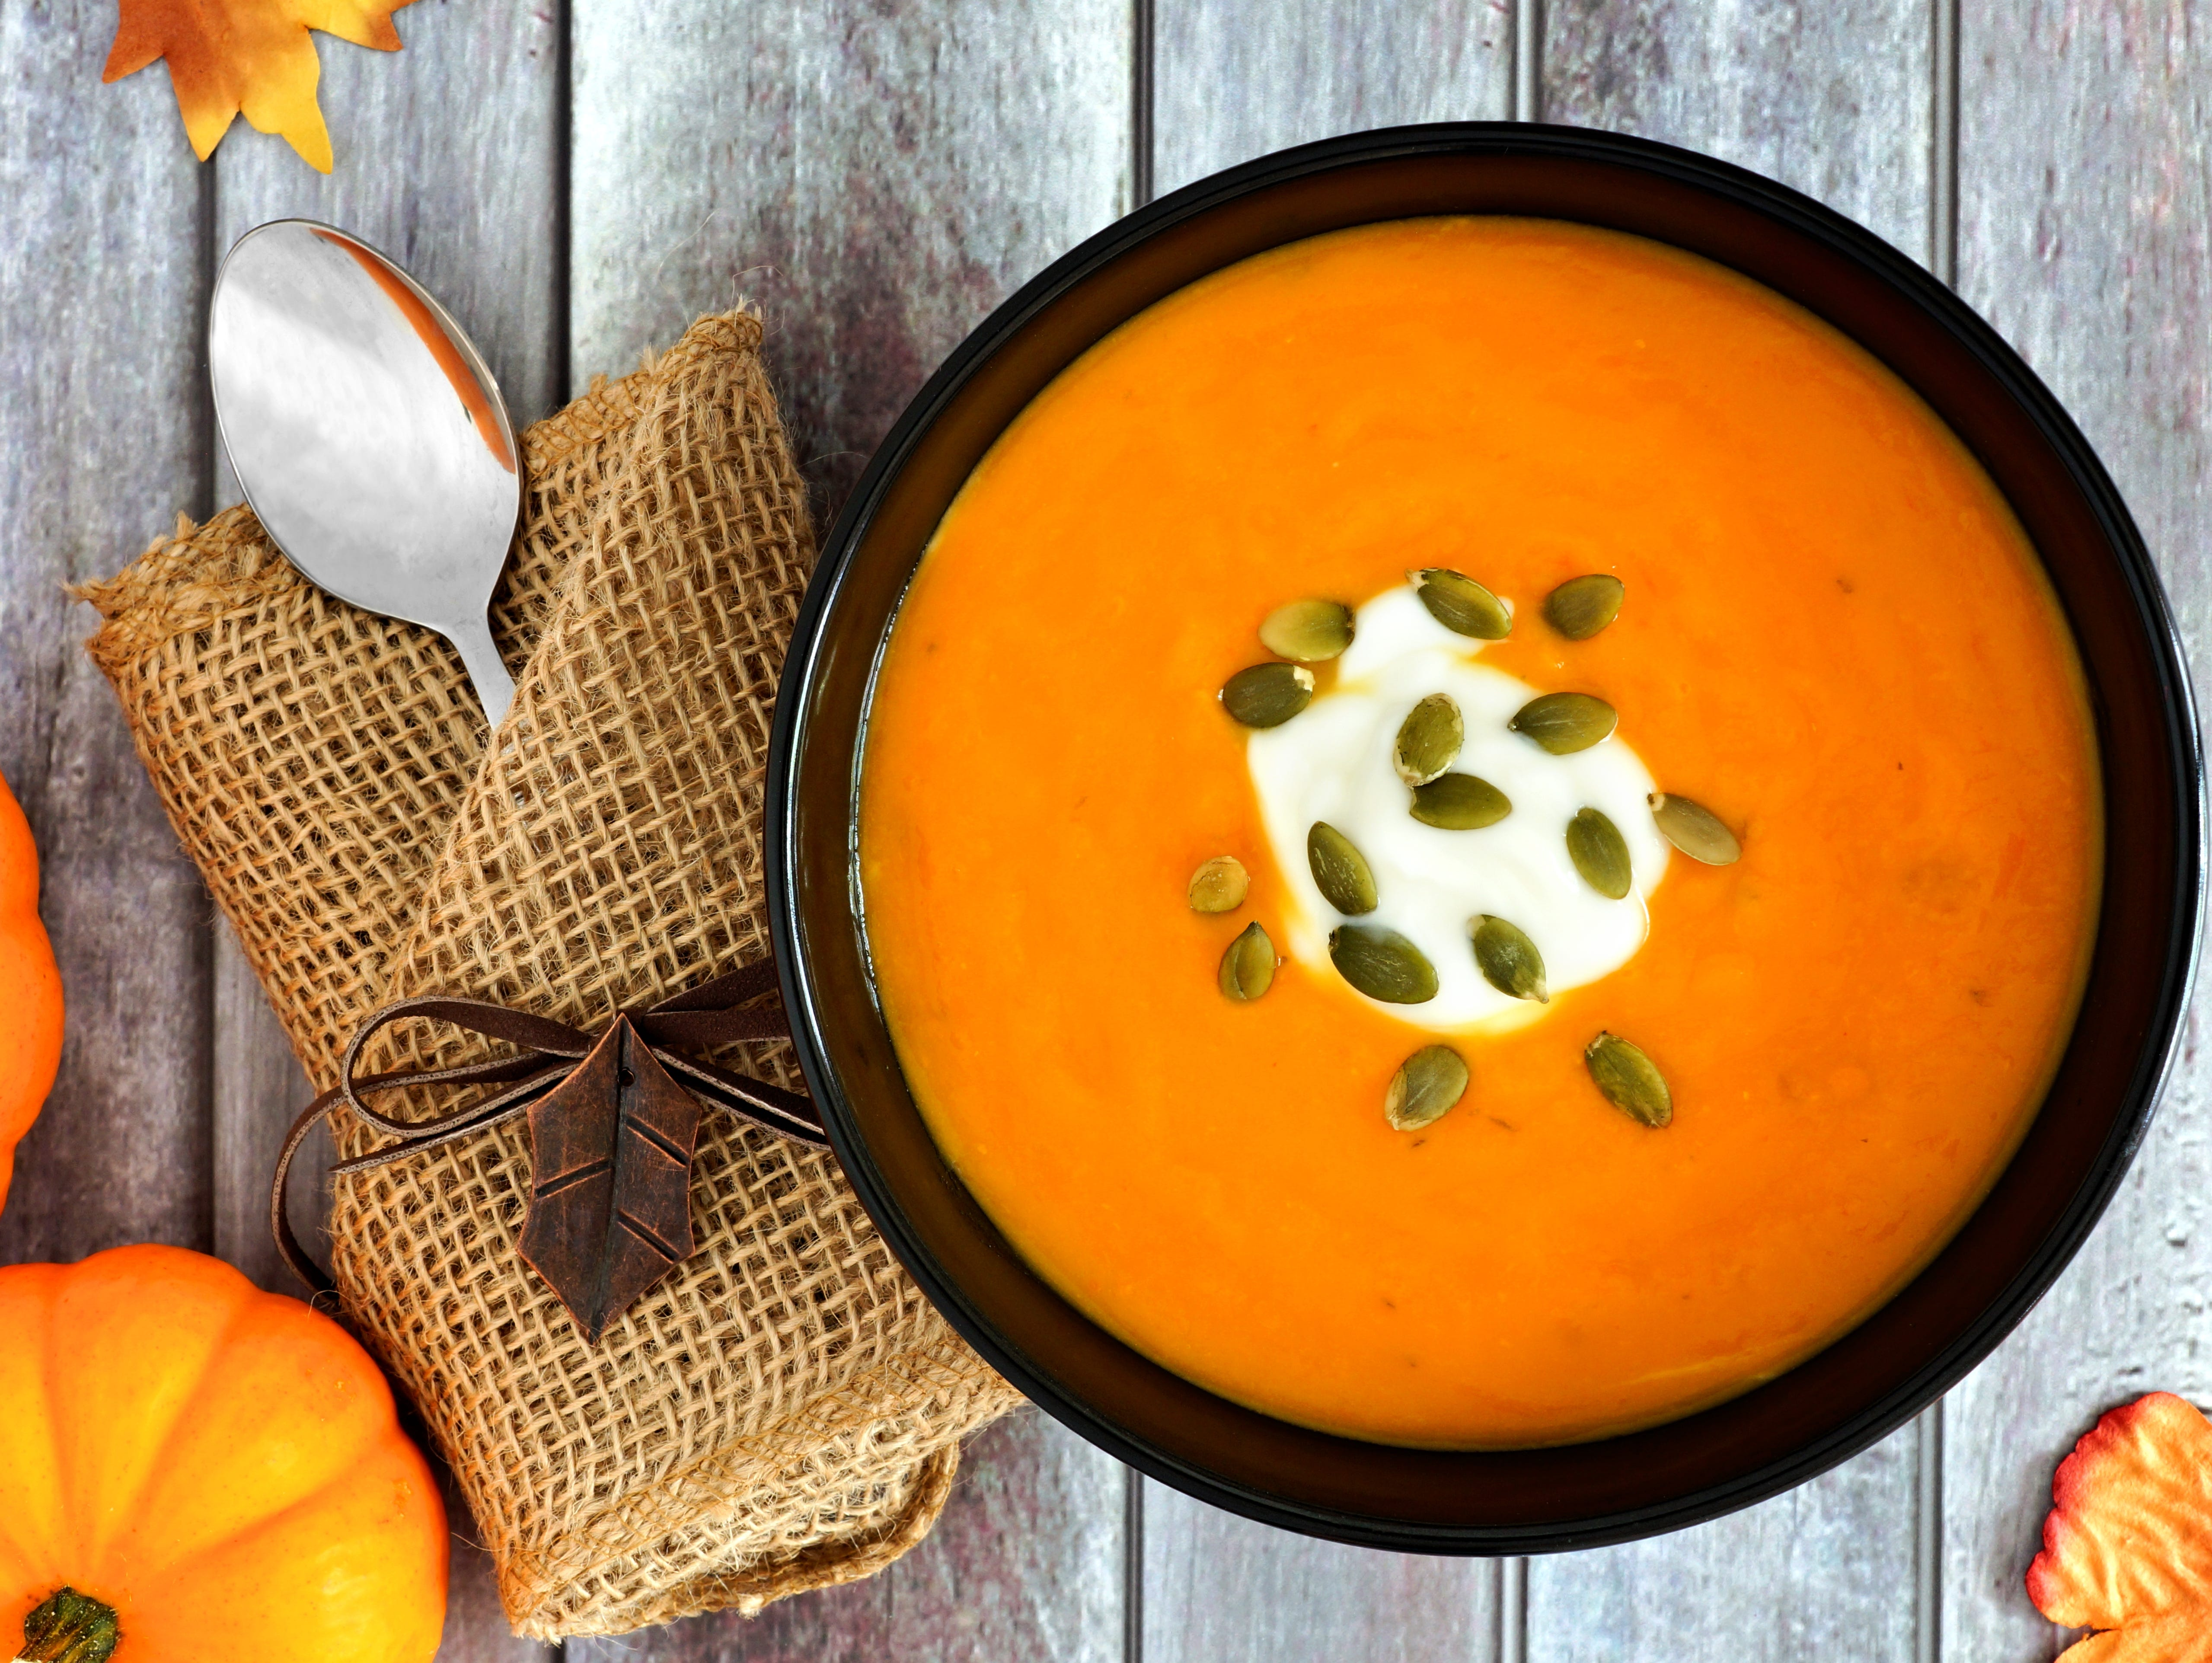 Pumpkins are a hearty autumn fruit and  the perfect main ingredient for many dishes.